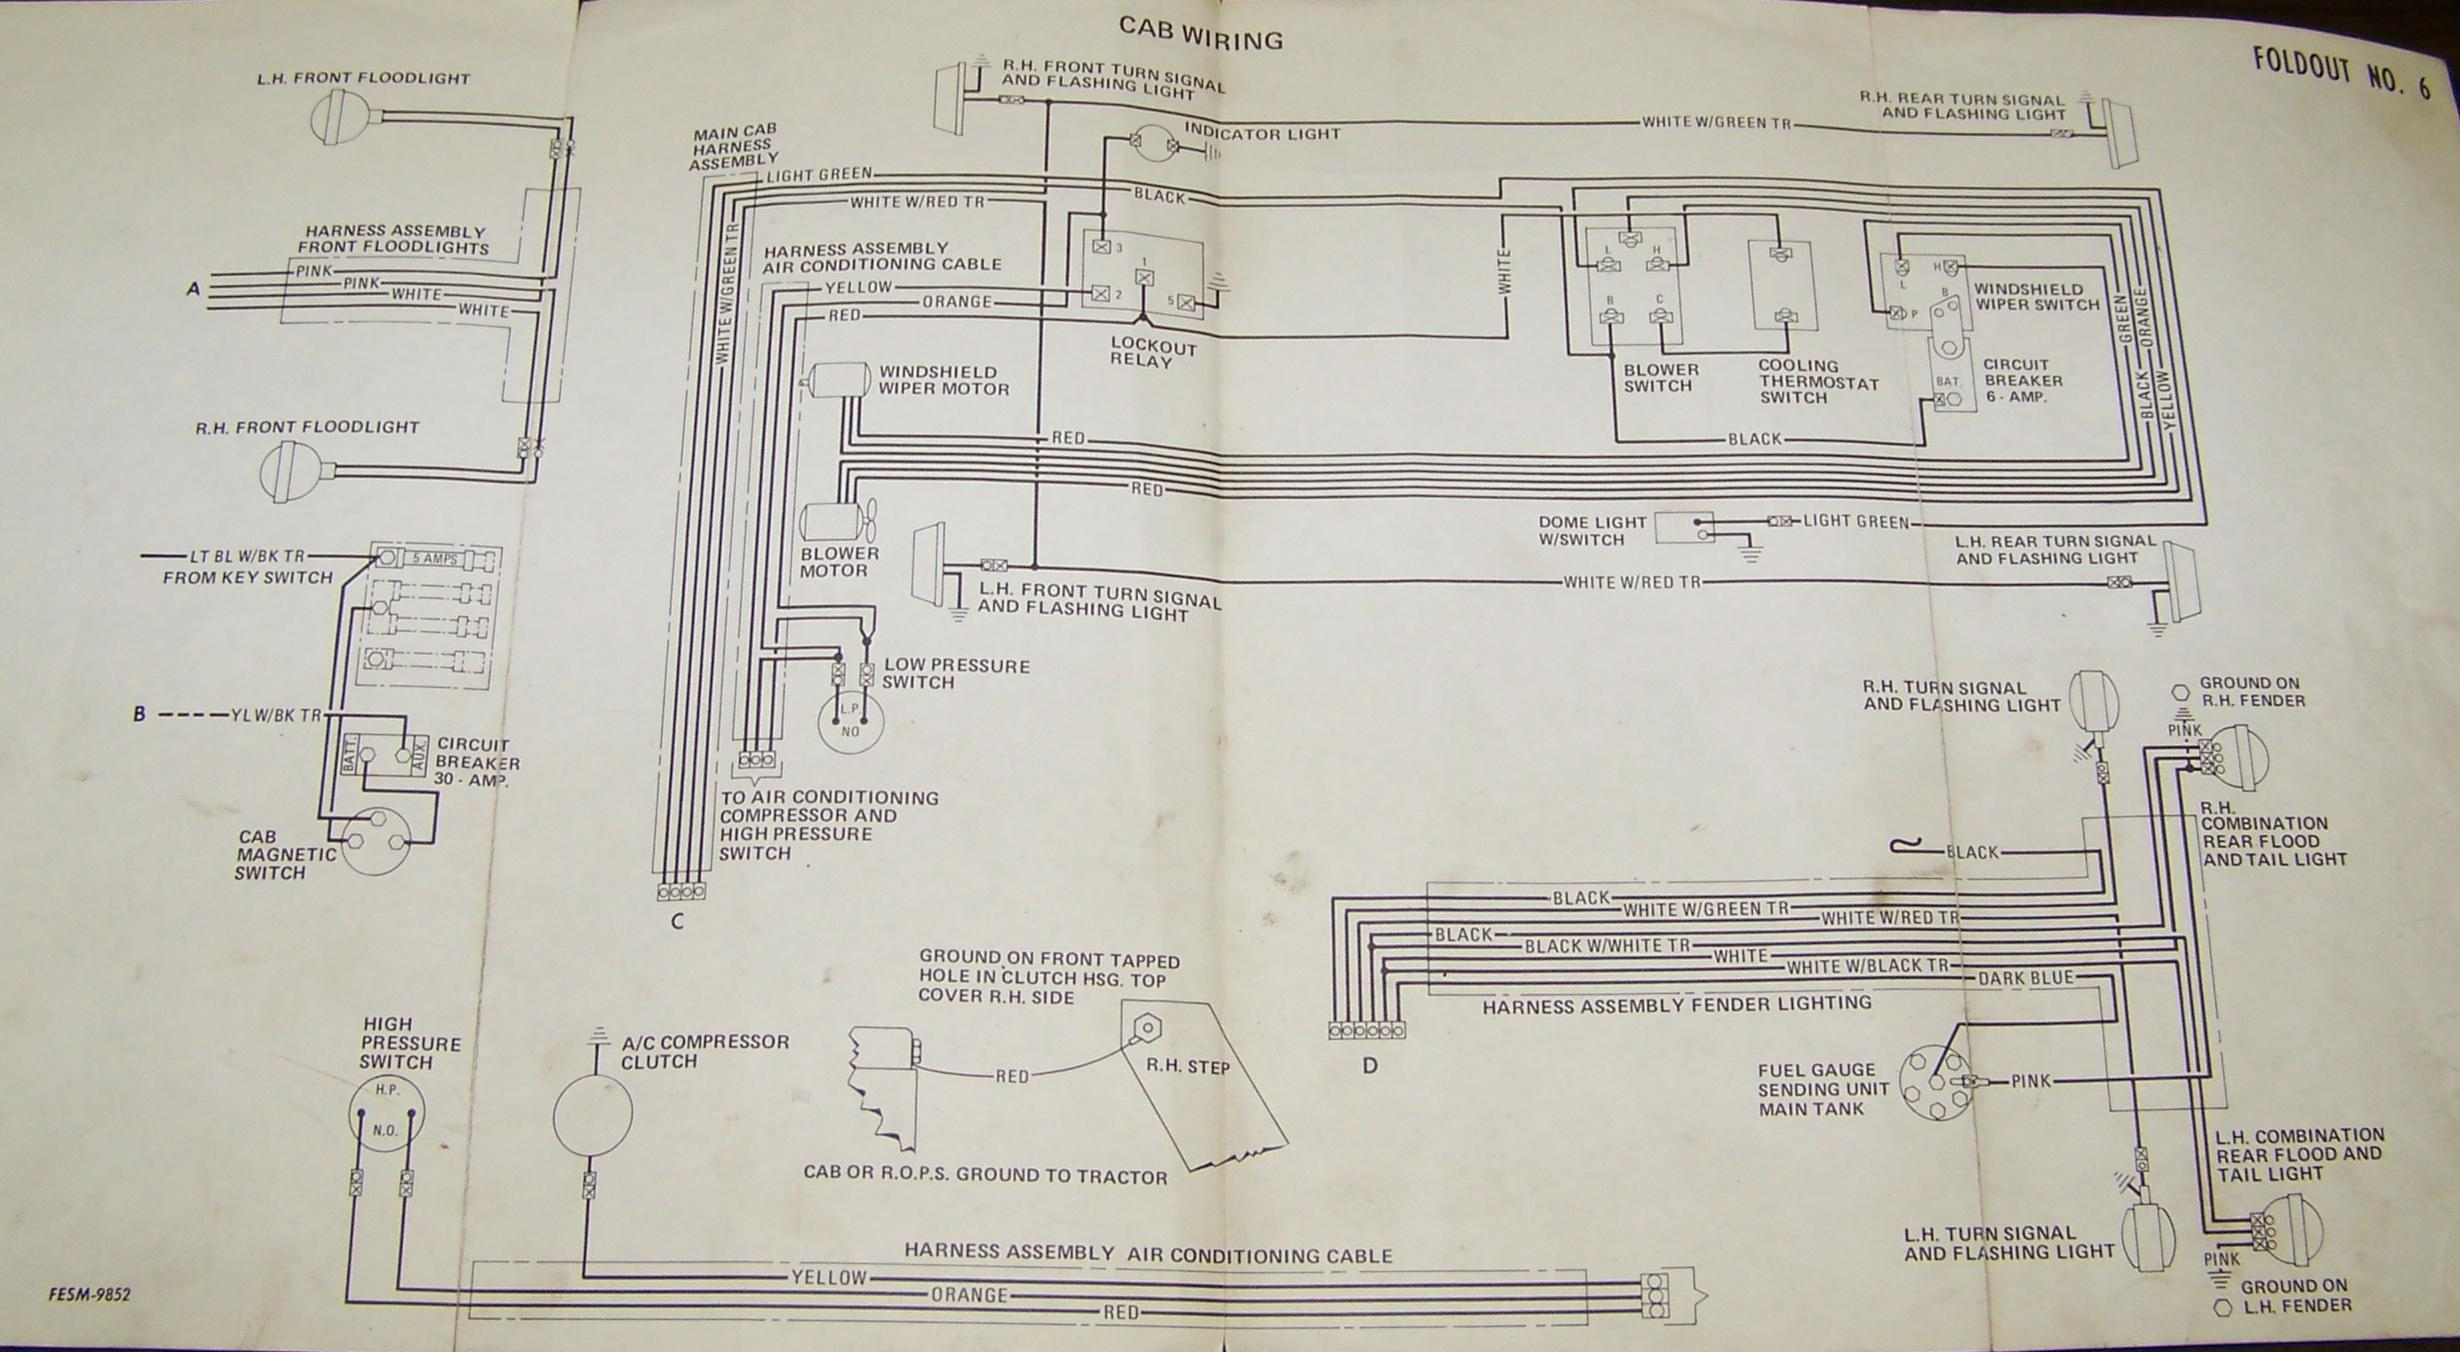 86series6 ih tractor wiring diagram ih tractor power steering \u2022 free wiring case 530 tractor wiring diagram at soozxer.org